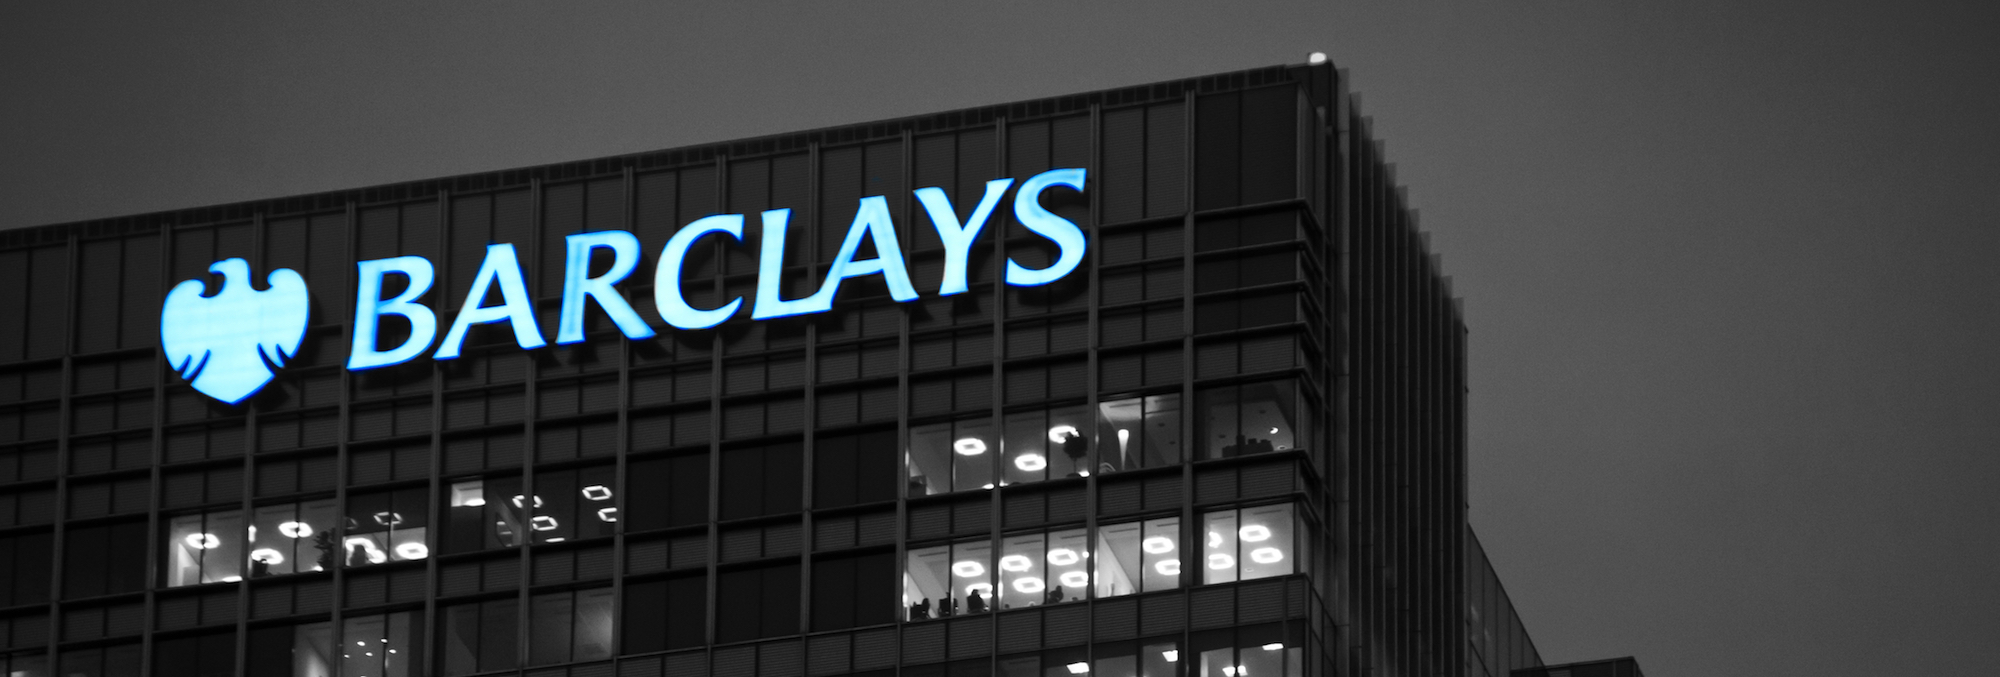 Barclays image